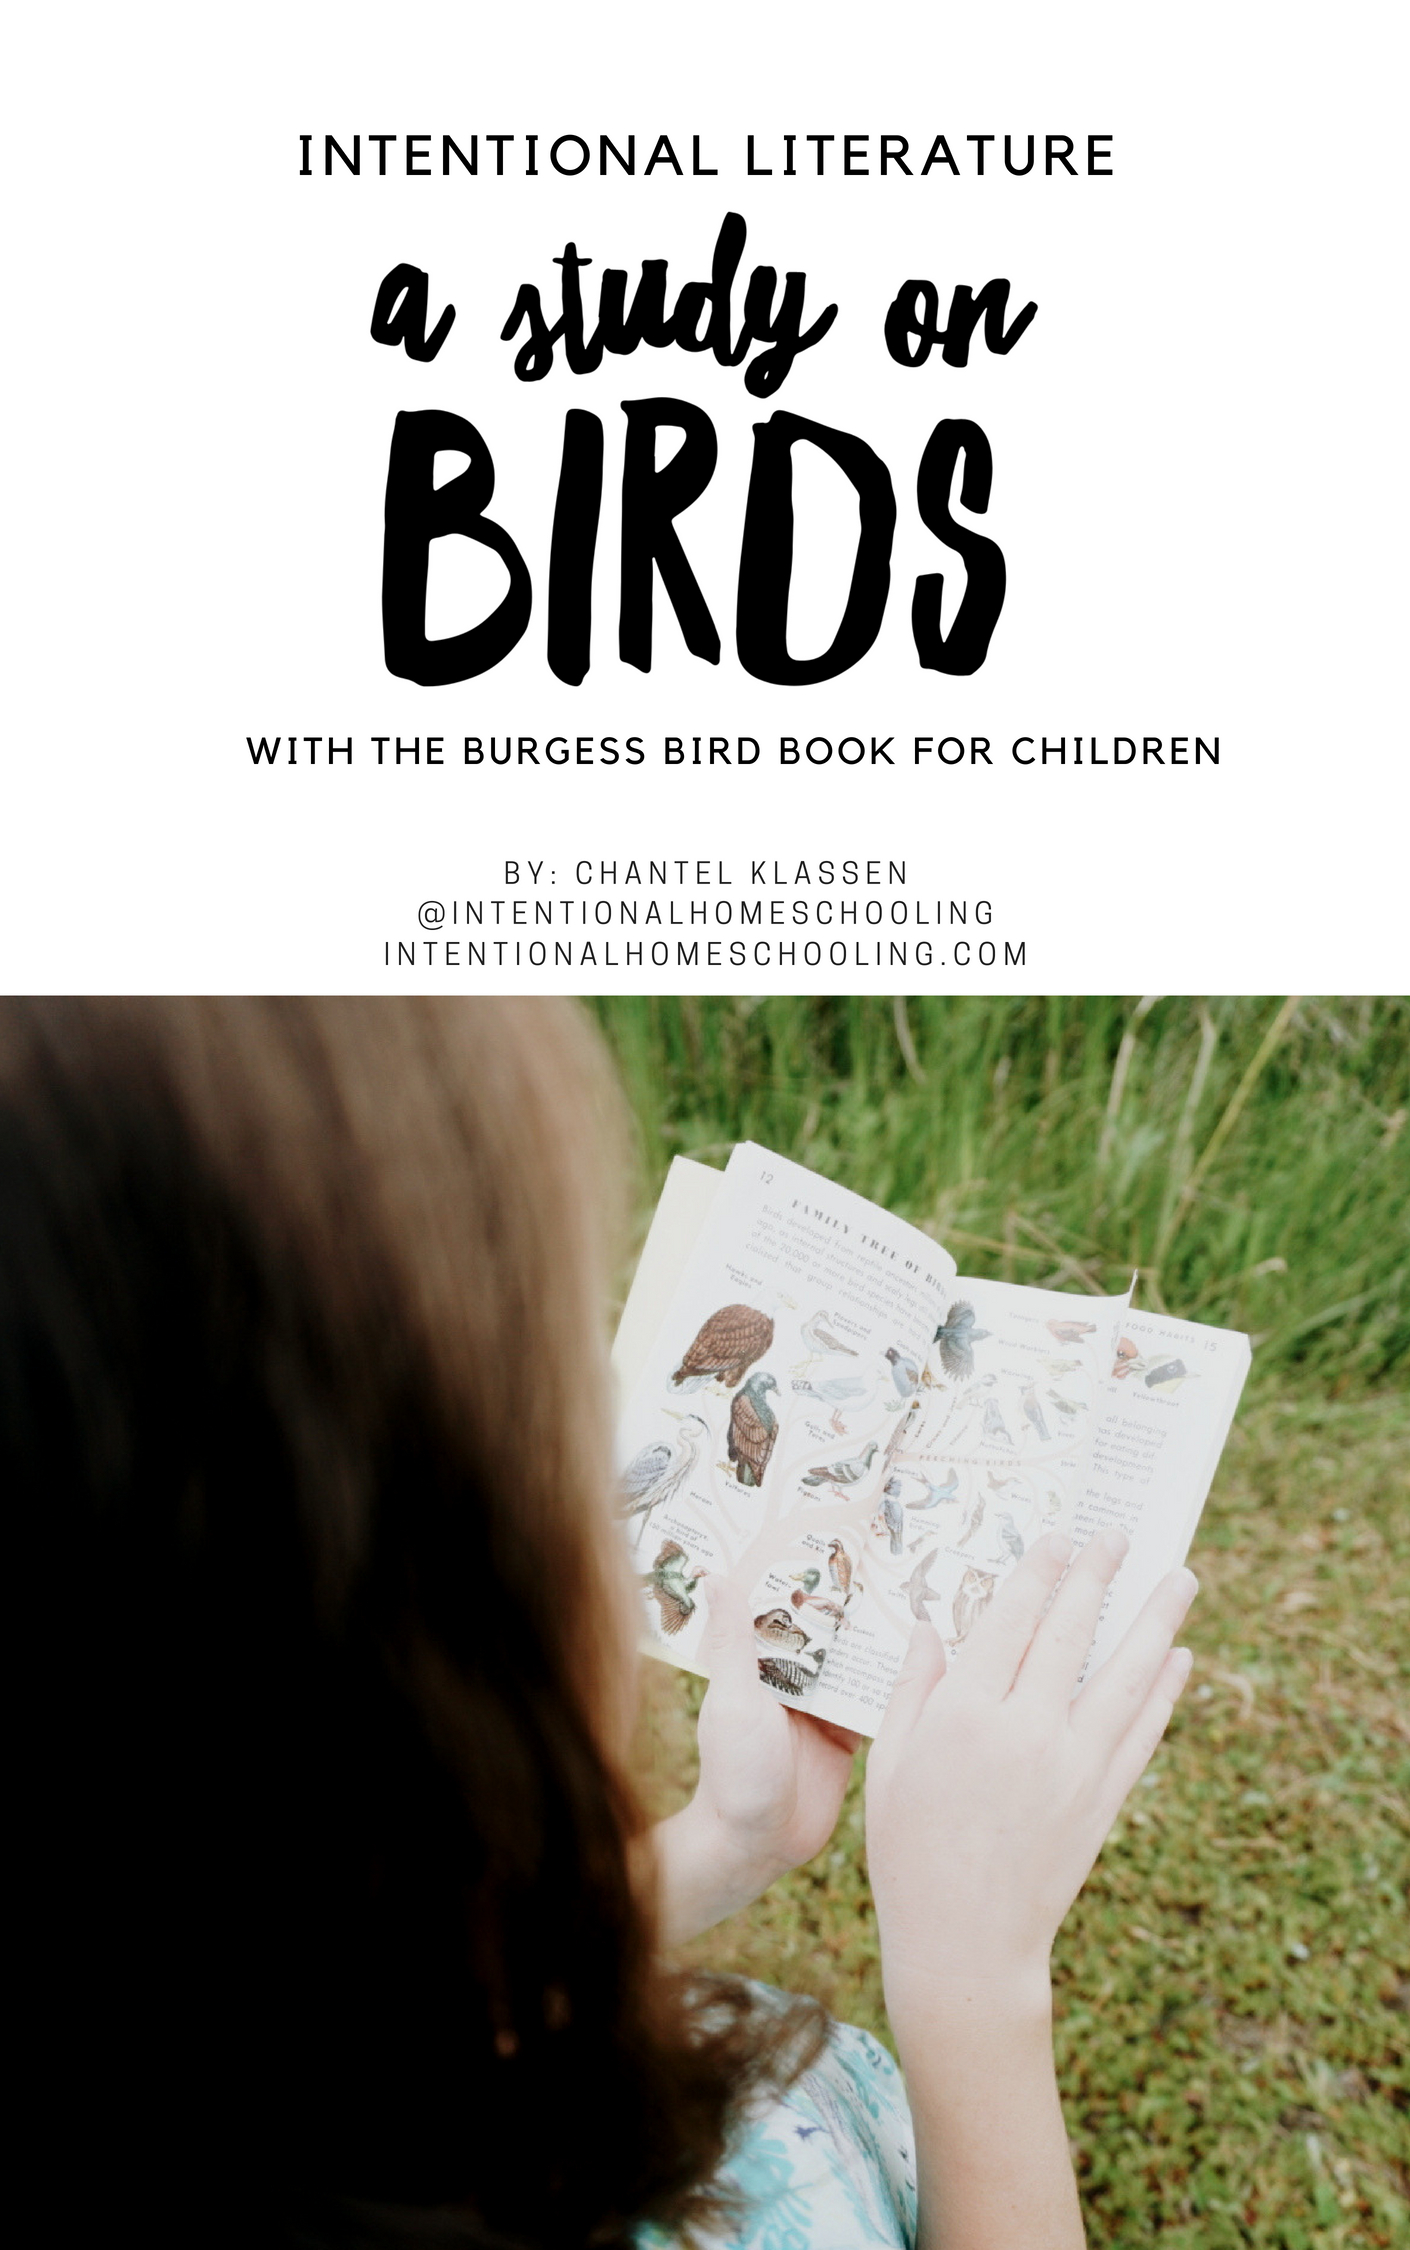 Bird Literature Guide - a literature unit study on birds using The Burgess Bird Book for Children